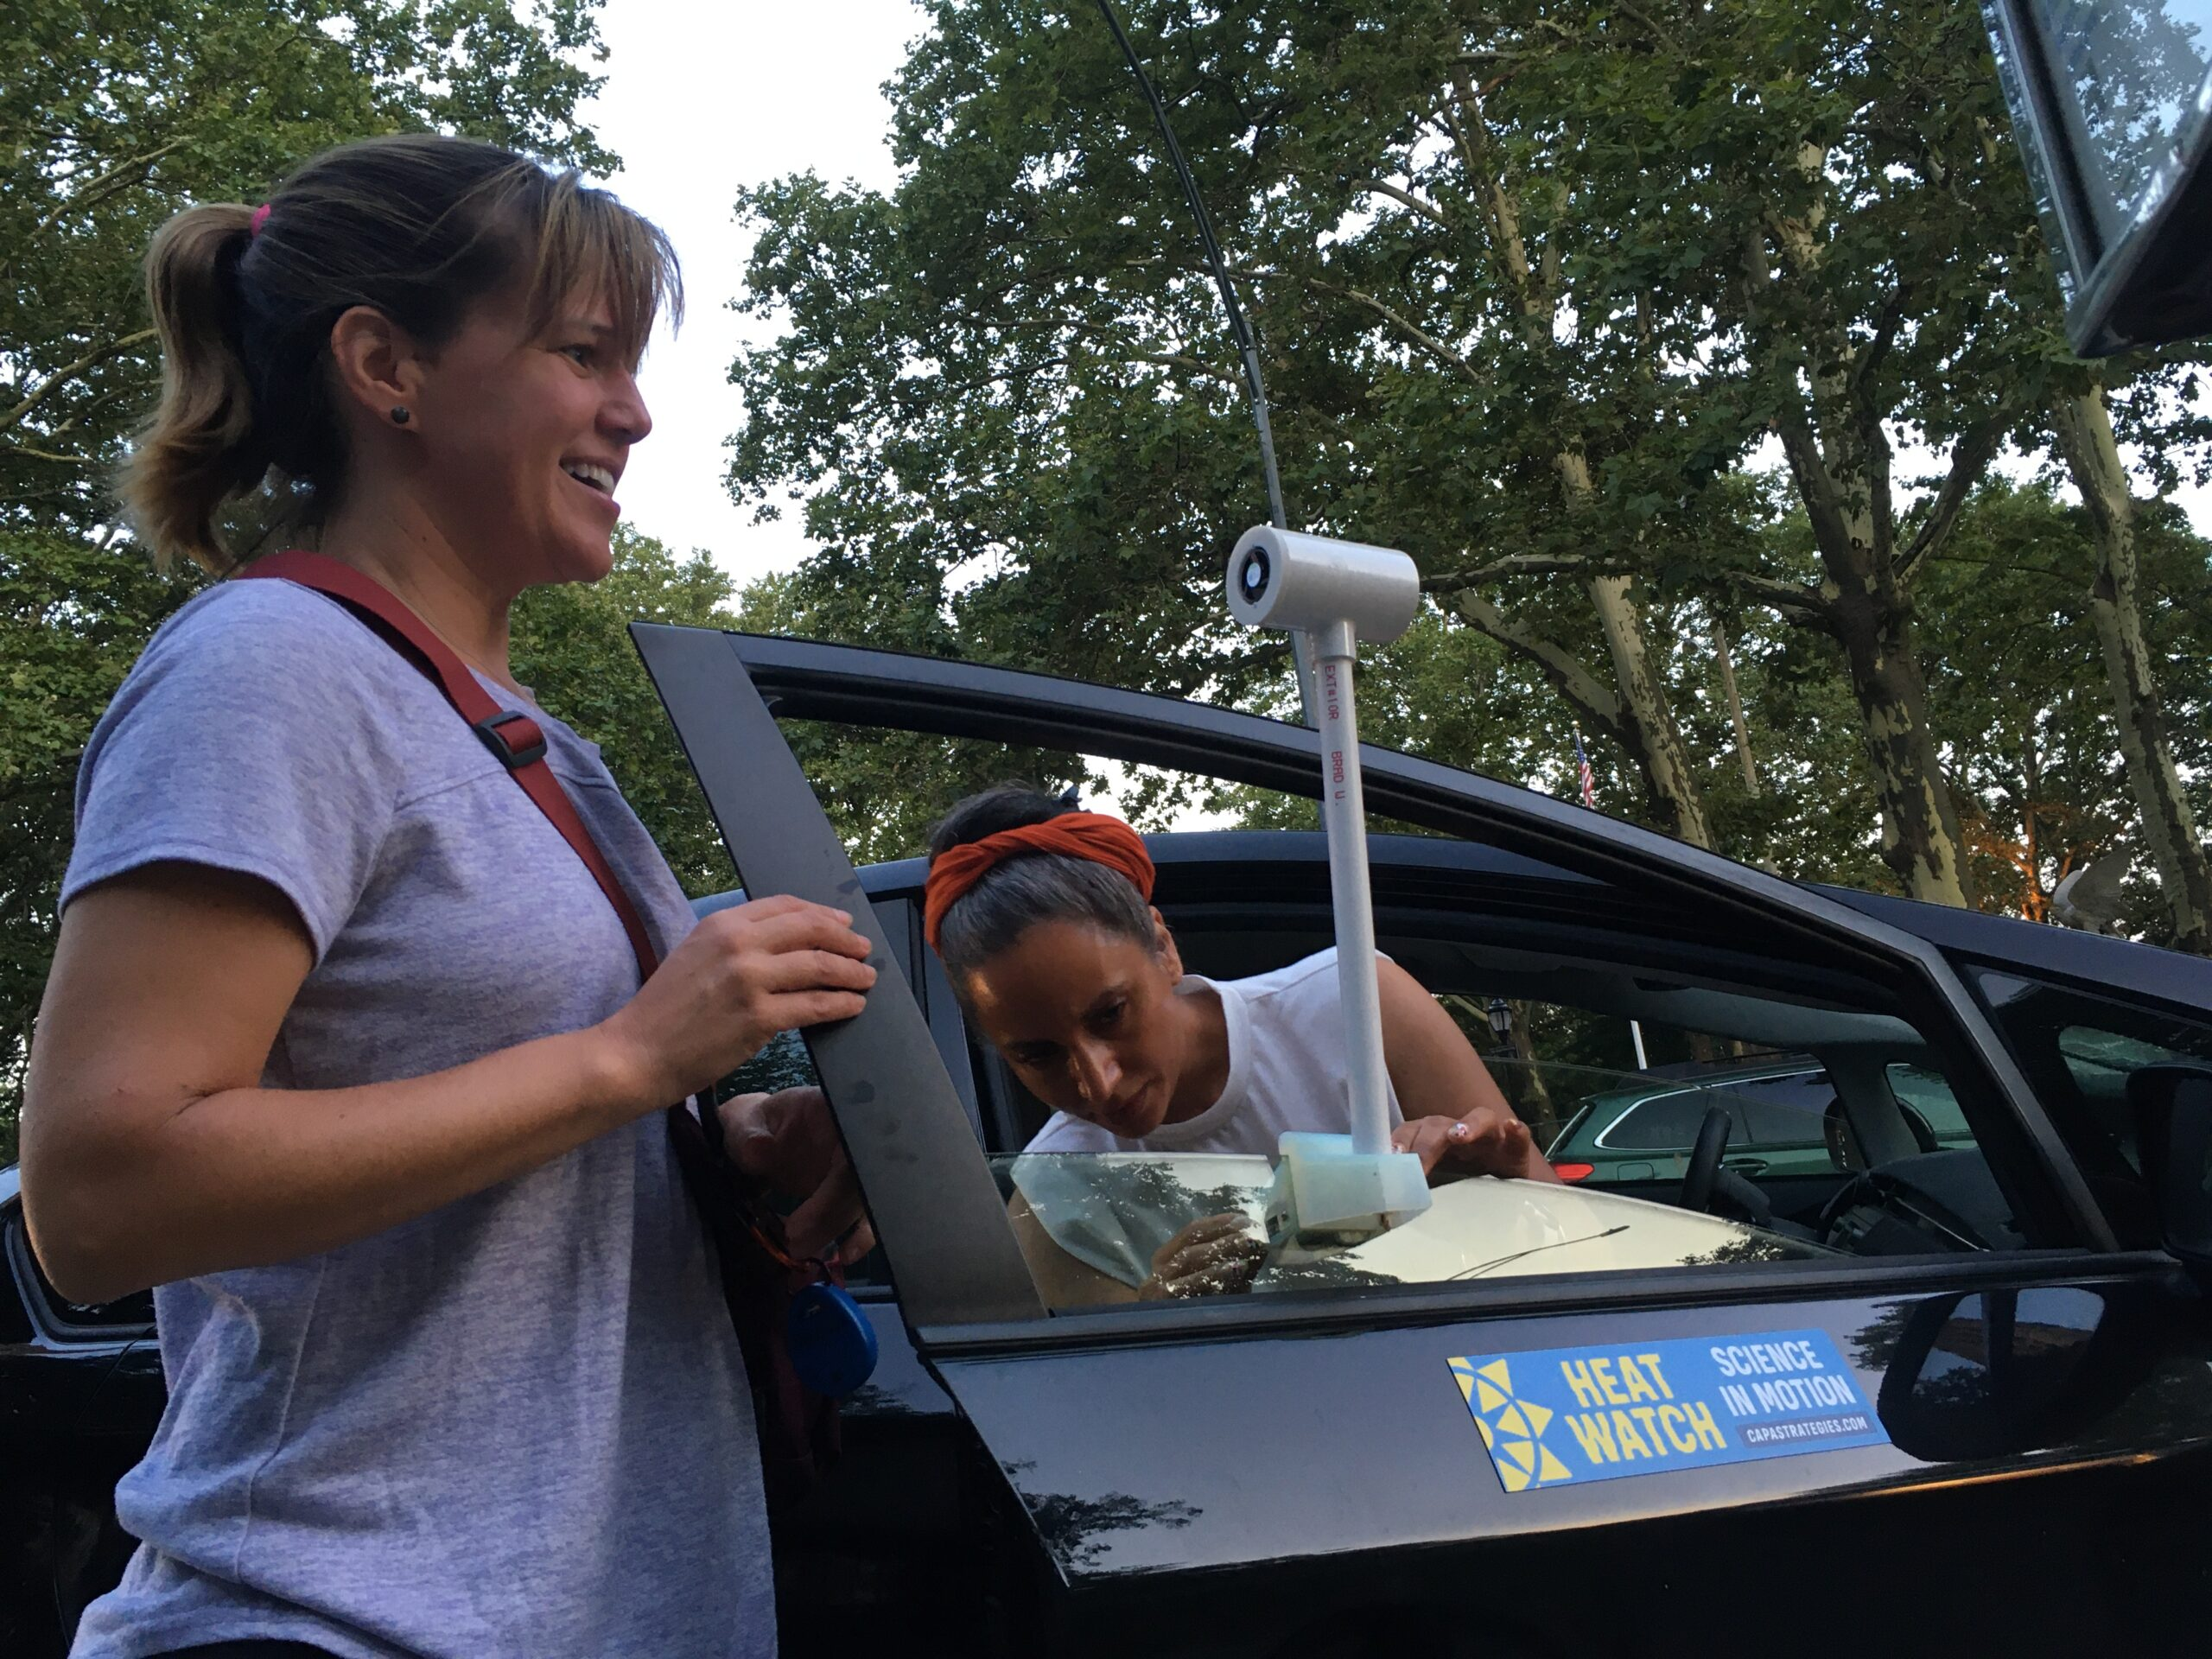 Volunteers Sarah Slack (left) and Satpal Kaur (right) prepare to drive around Northern Manhattan with a temperature and humidity sensor on July 24, 2021, as part of a campaign to map disparities in the urban heat island effect between New York City neighborhoods. Credit: Delger Erdenesanaa